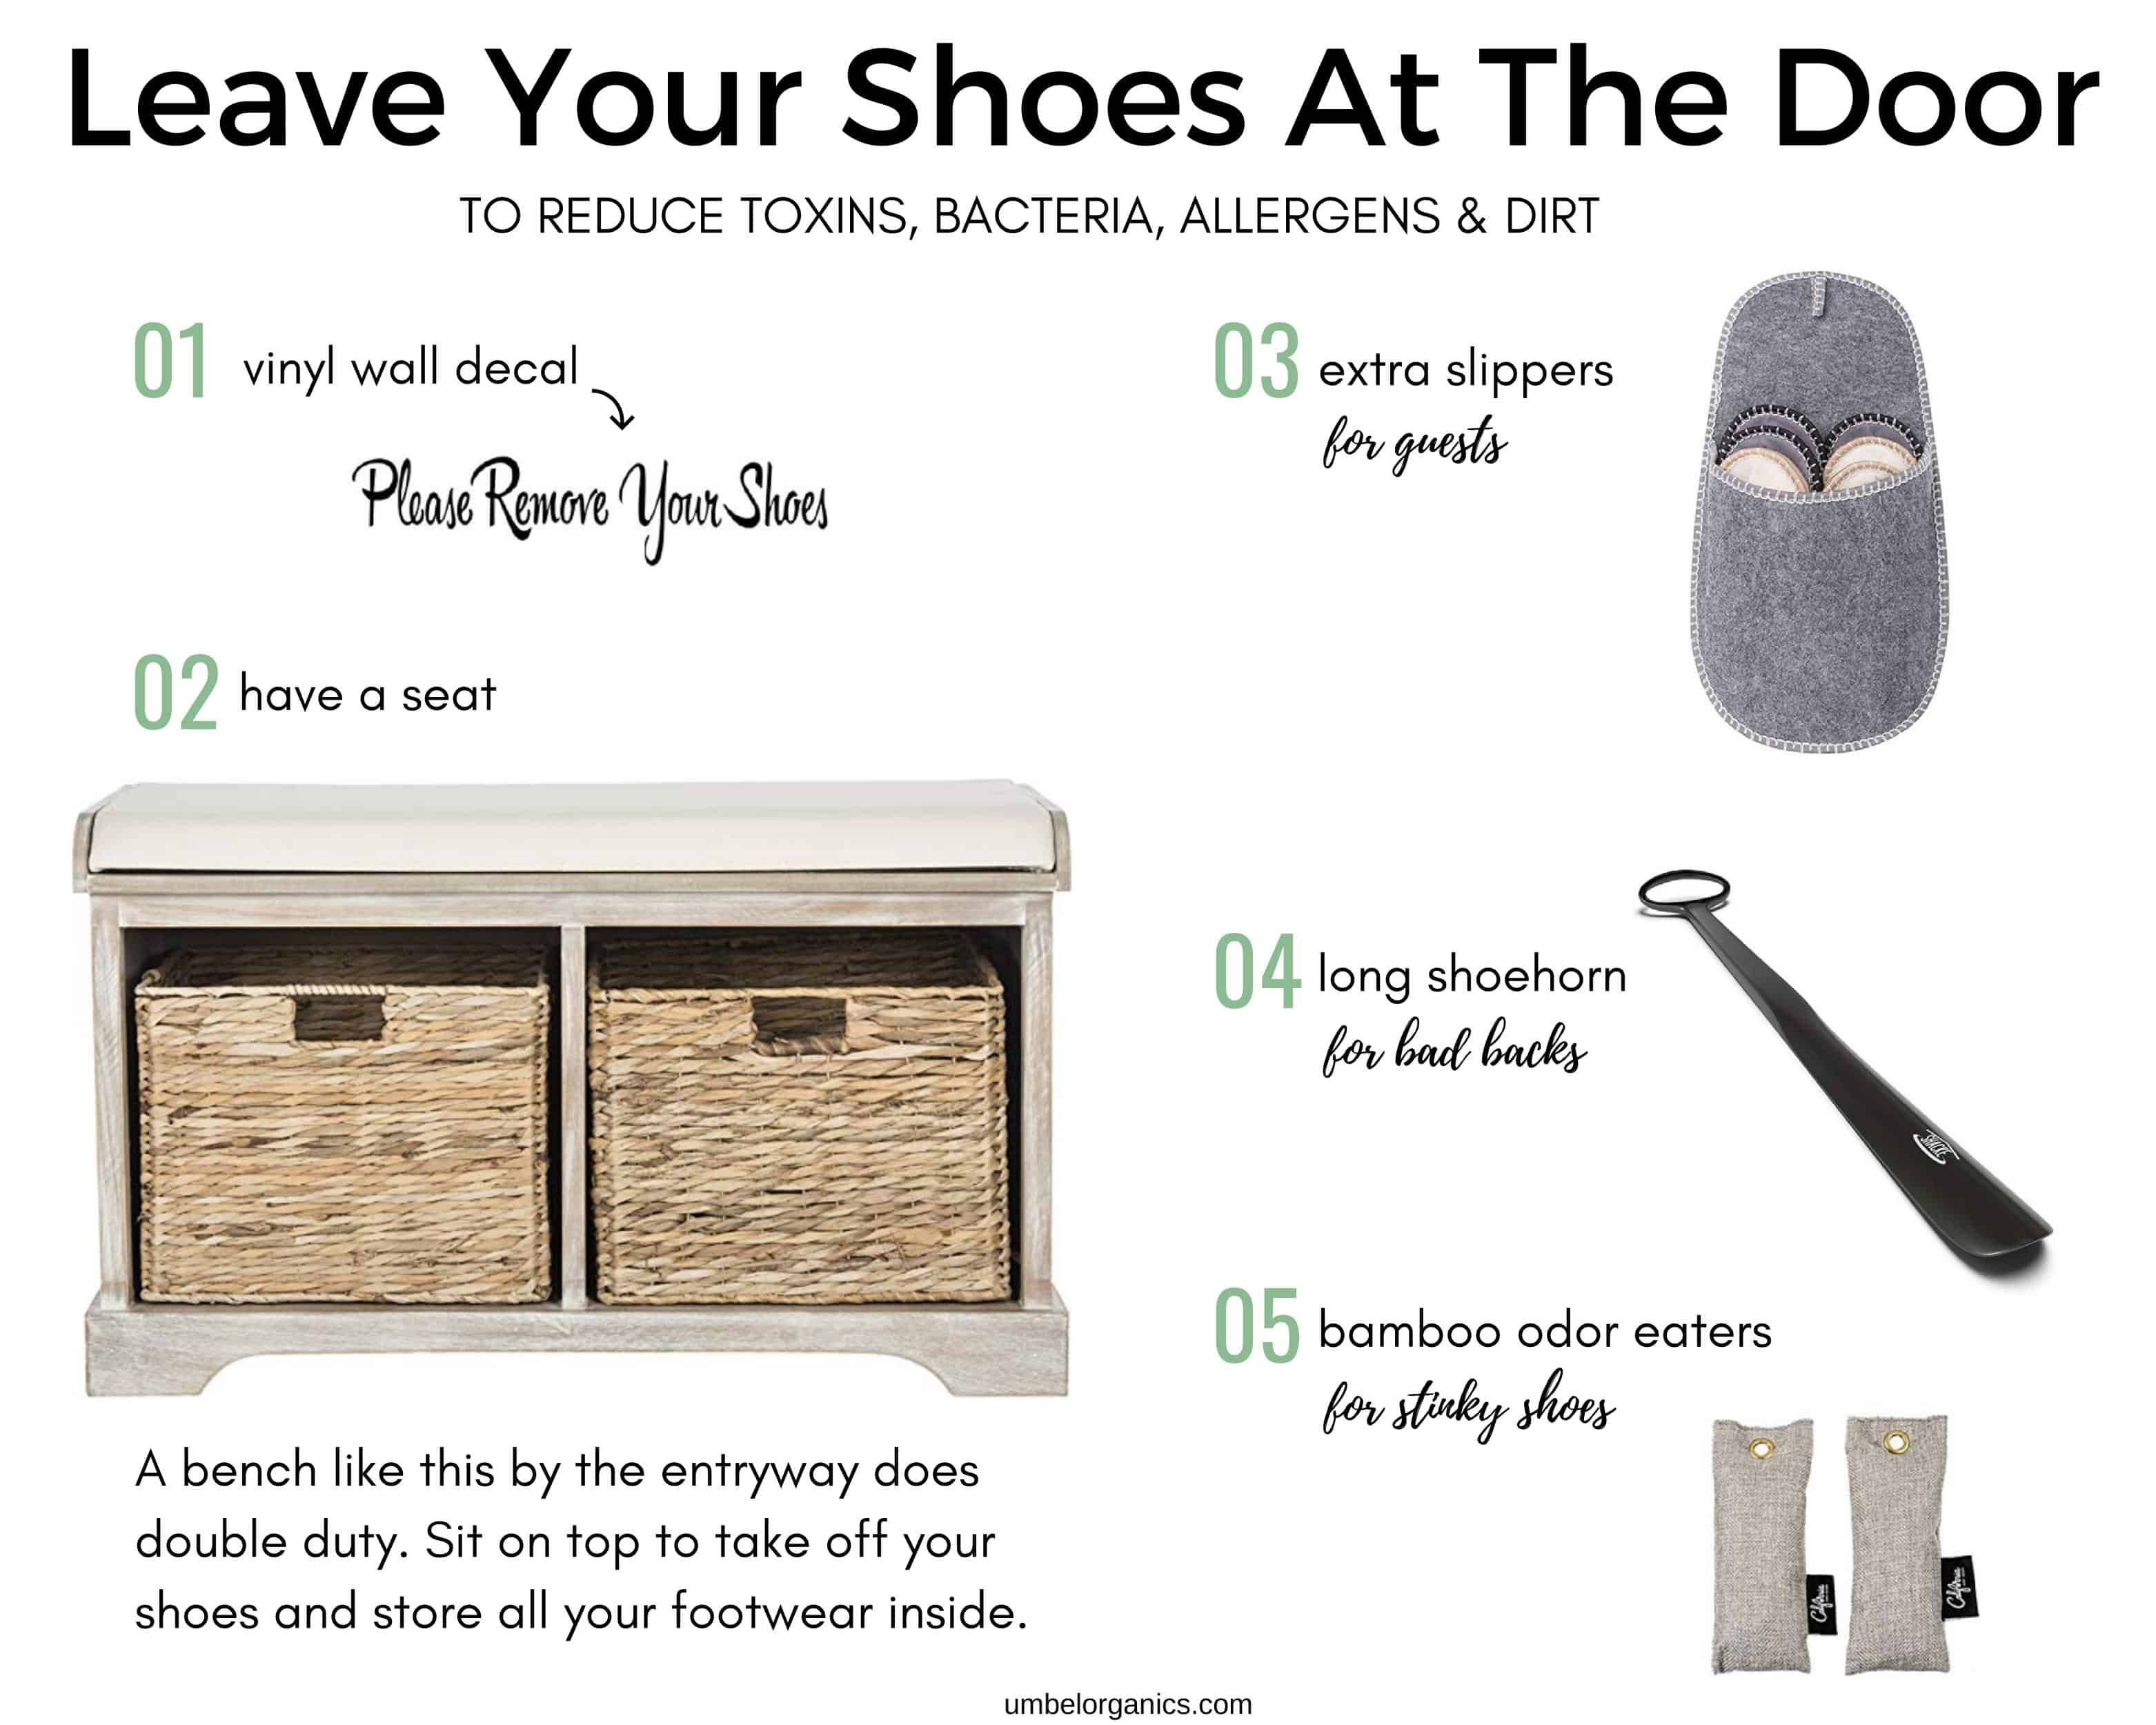 5 Helpful items for leaving shoes at the door